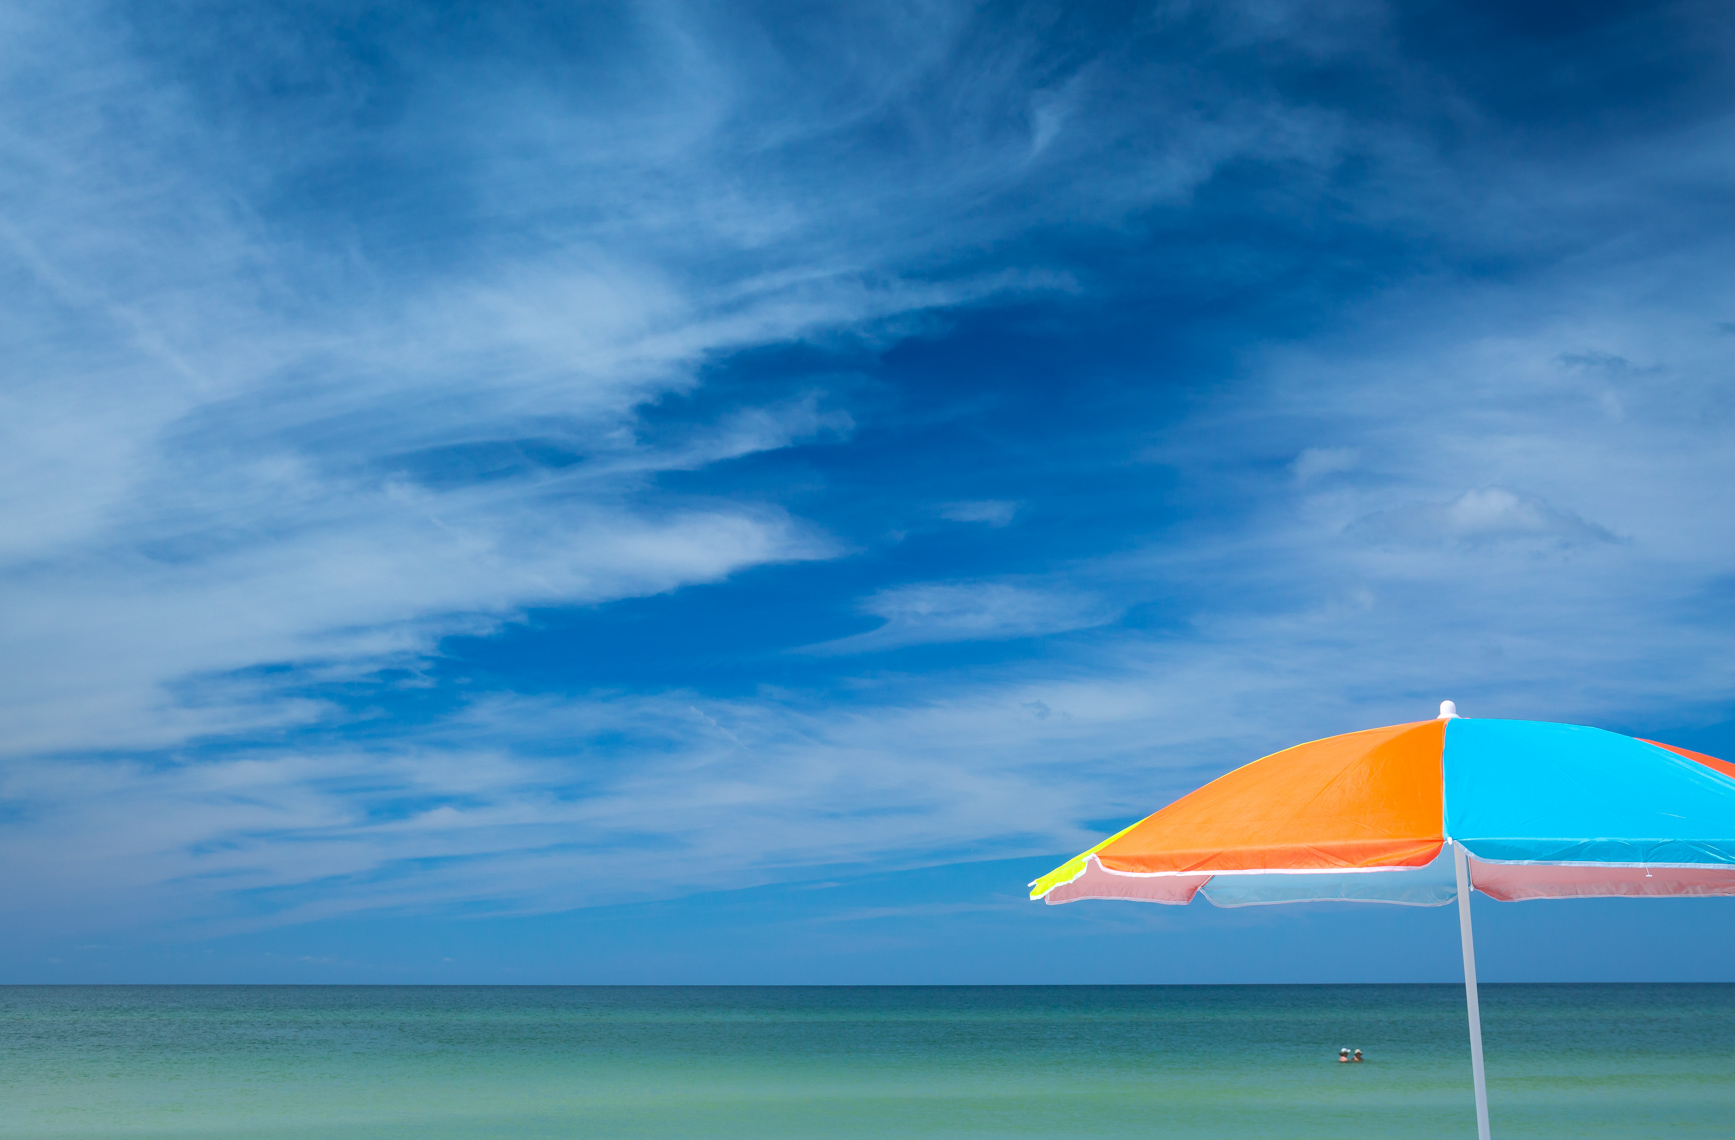 Vibrant umbrella on Florida beach, shot by Steven P. Widoff, editorial, lifestyle and advertising commercial photographer in Tampa, Florida.